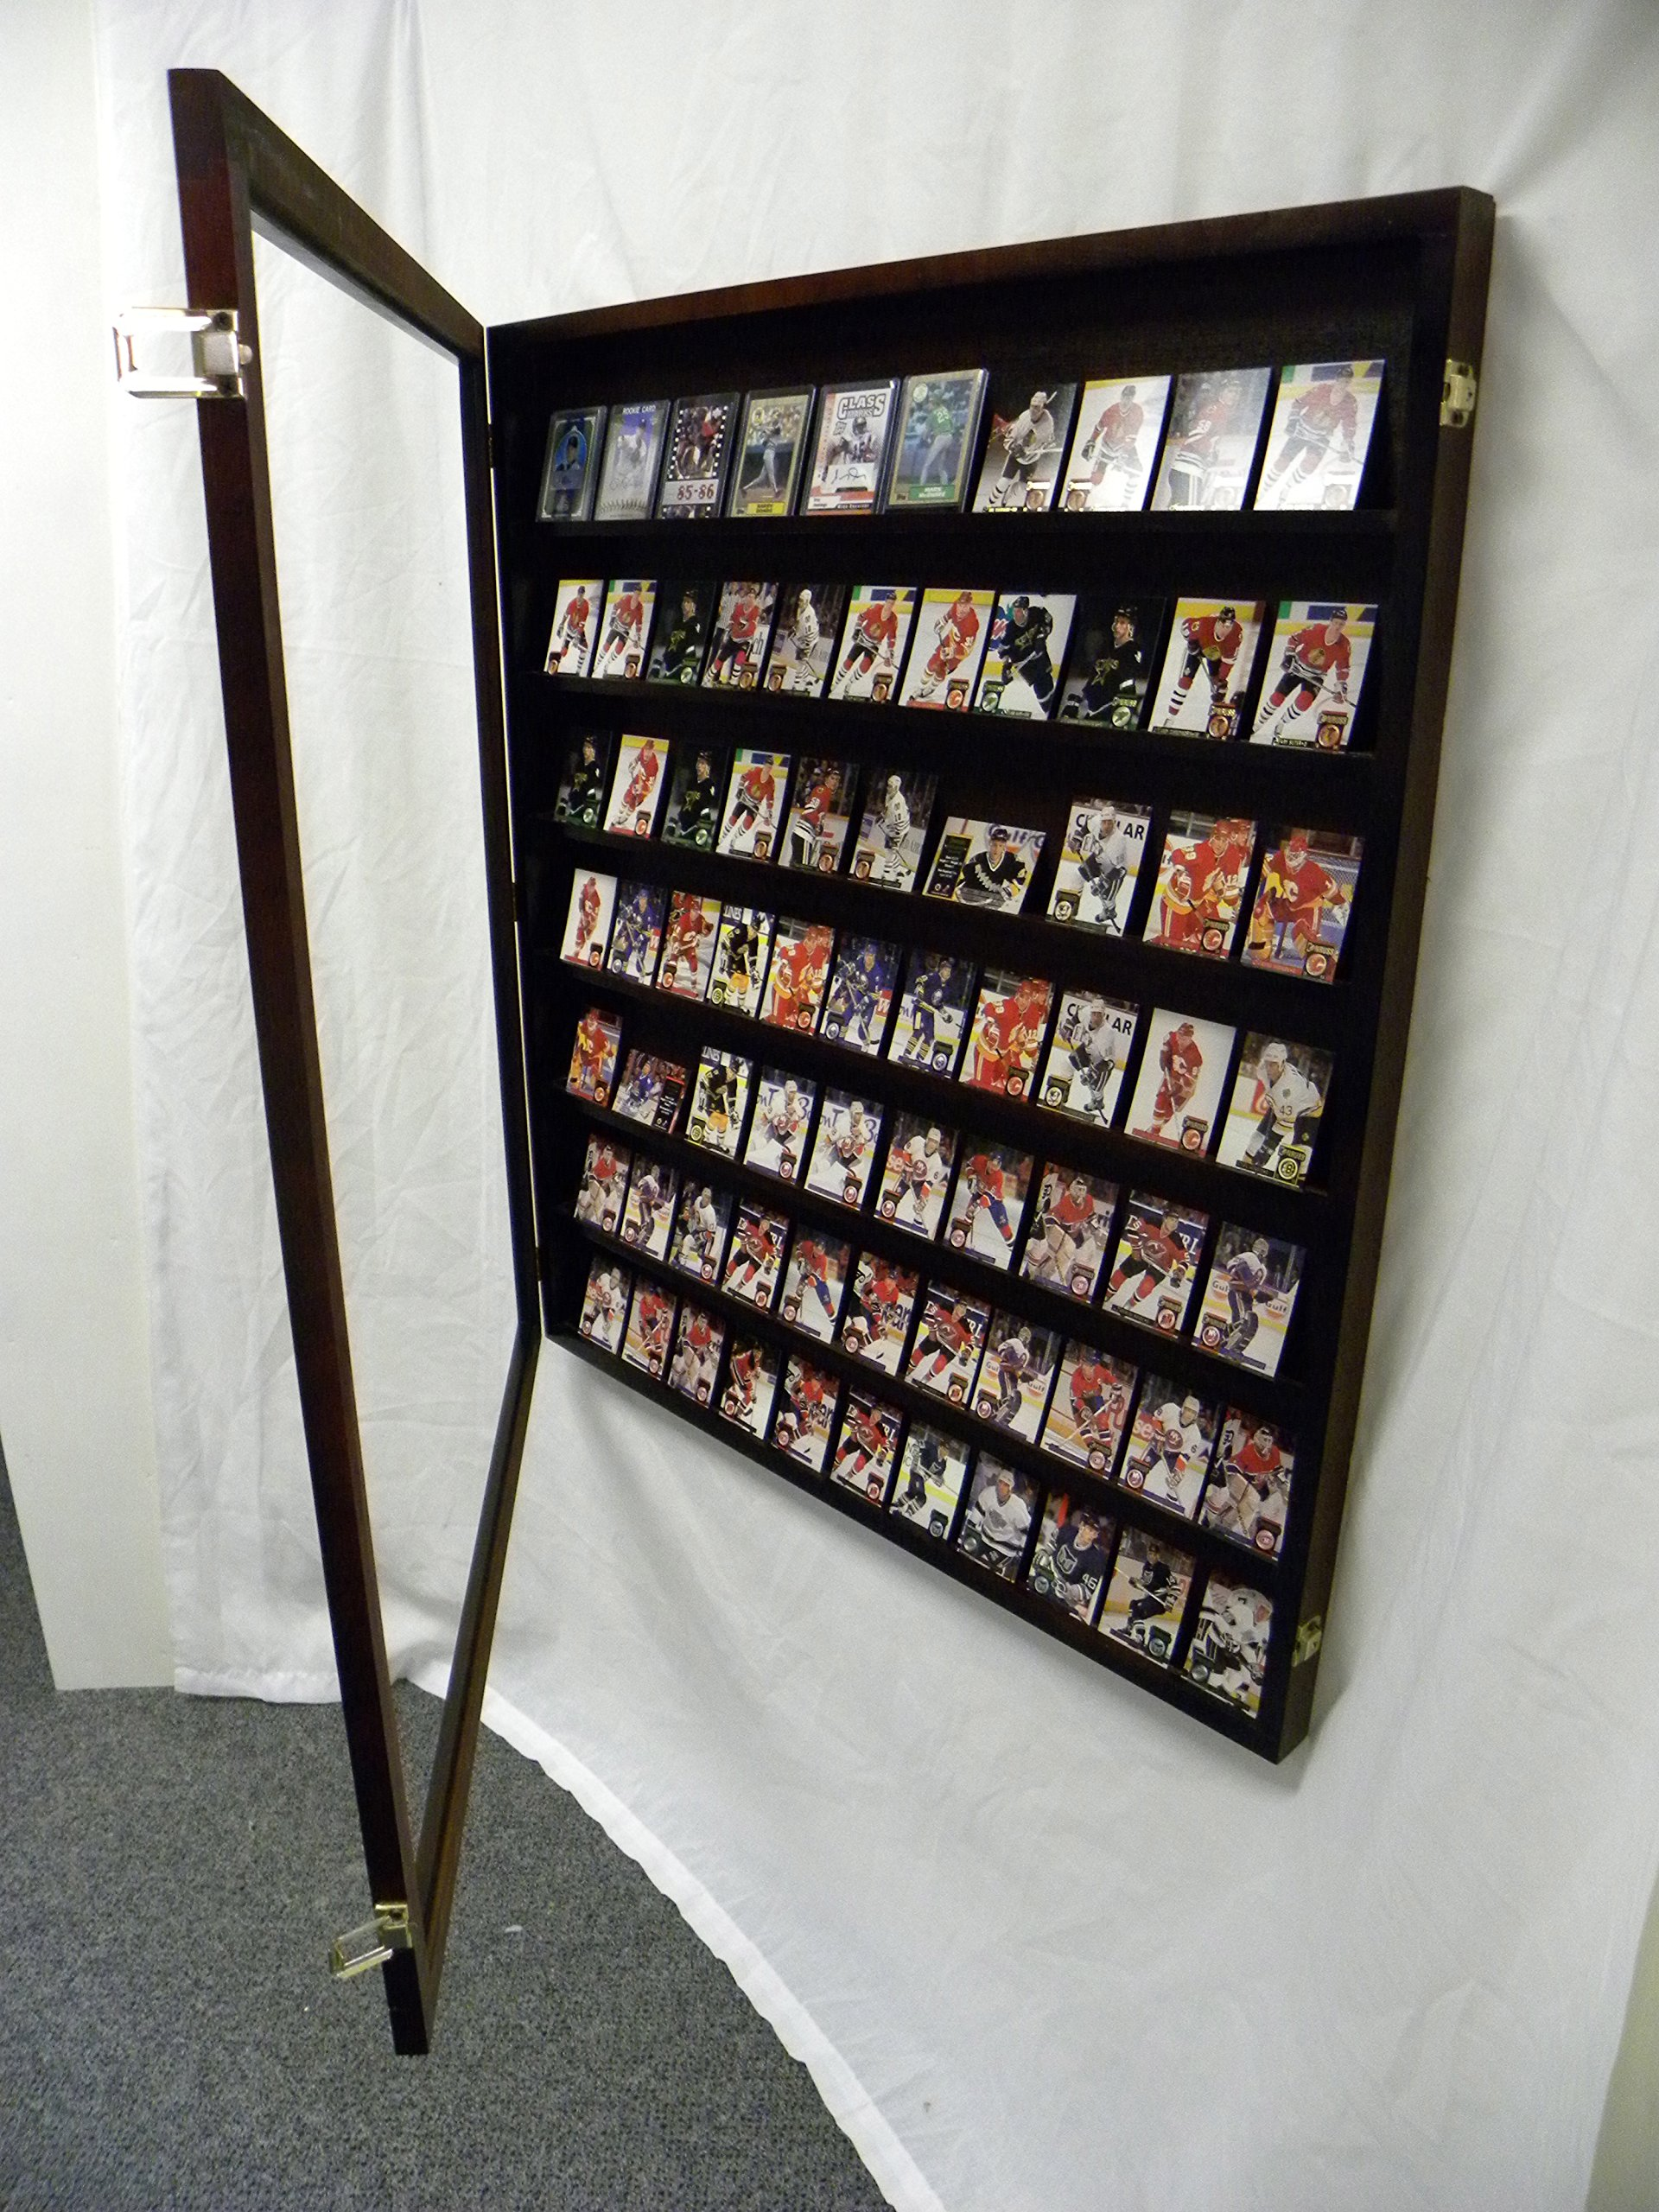 Card Deck Display Case for Decks of Cards/Playing Card Deck Display Case (Cherry) by Pennzoni Display (Image #7)